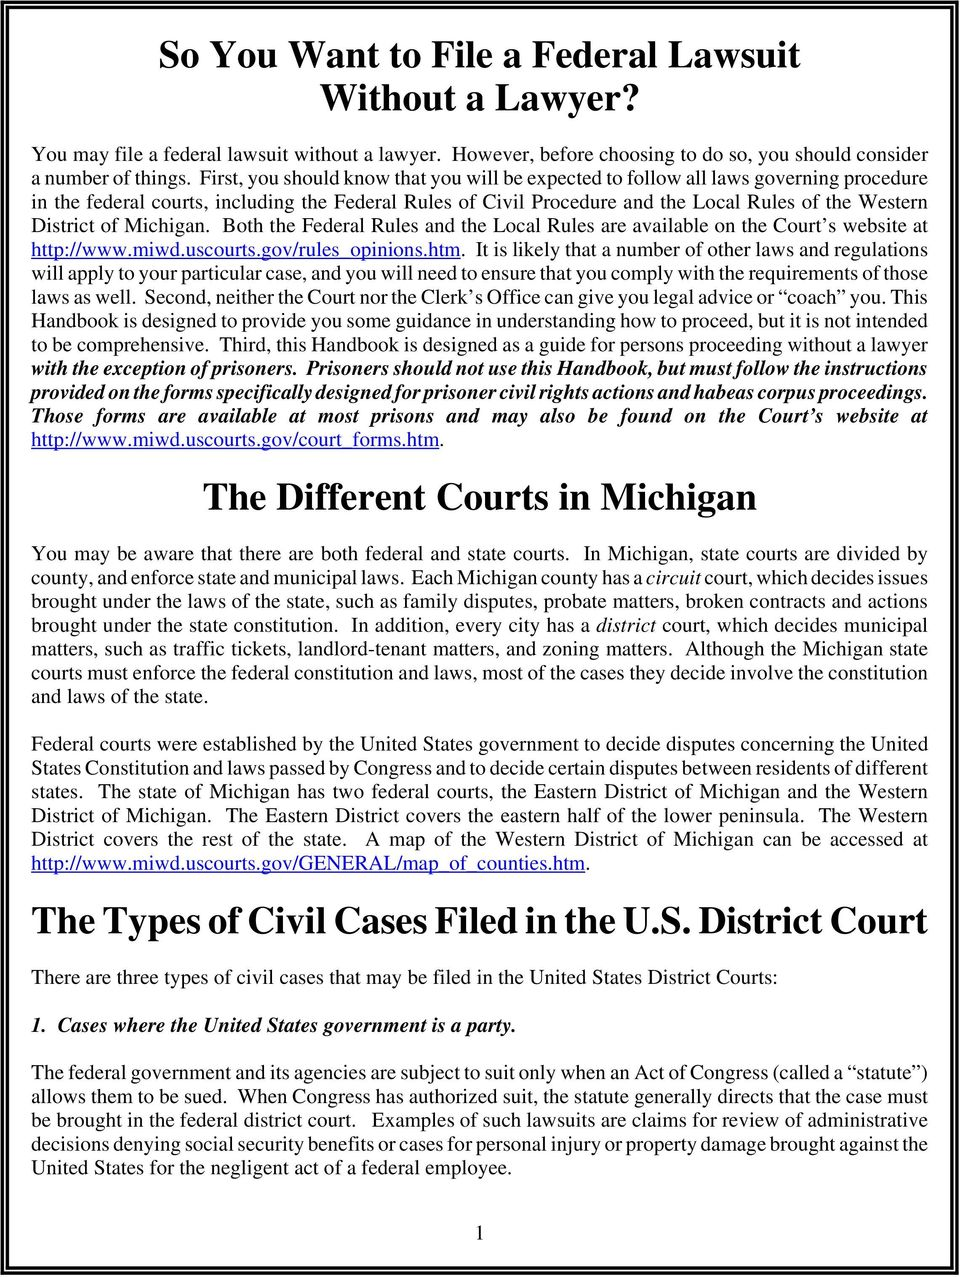 District of Michigan. Both the Federal Rules and the Local Rules are available on the Court s website at http://www.miwd.uscourts.gov/rules_opinions.htm.